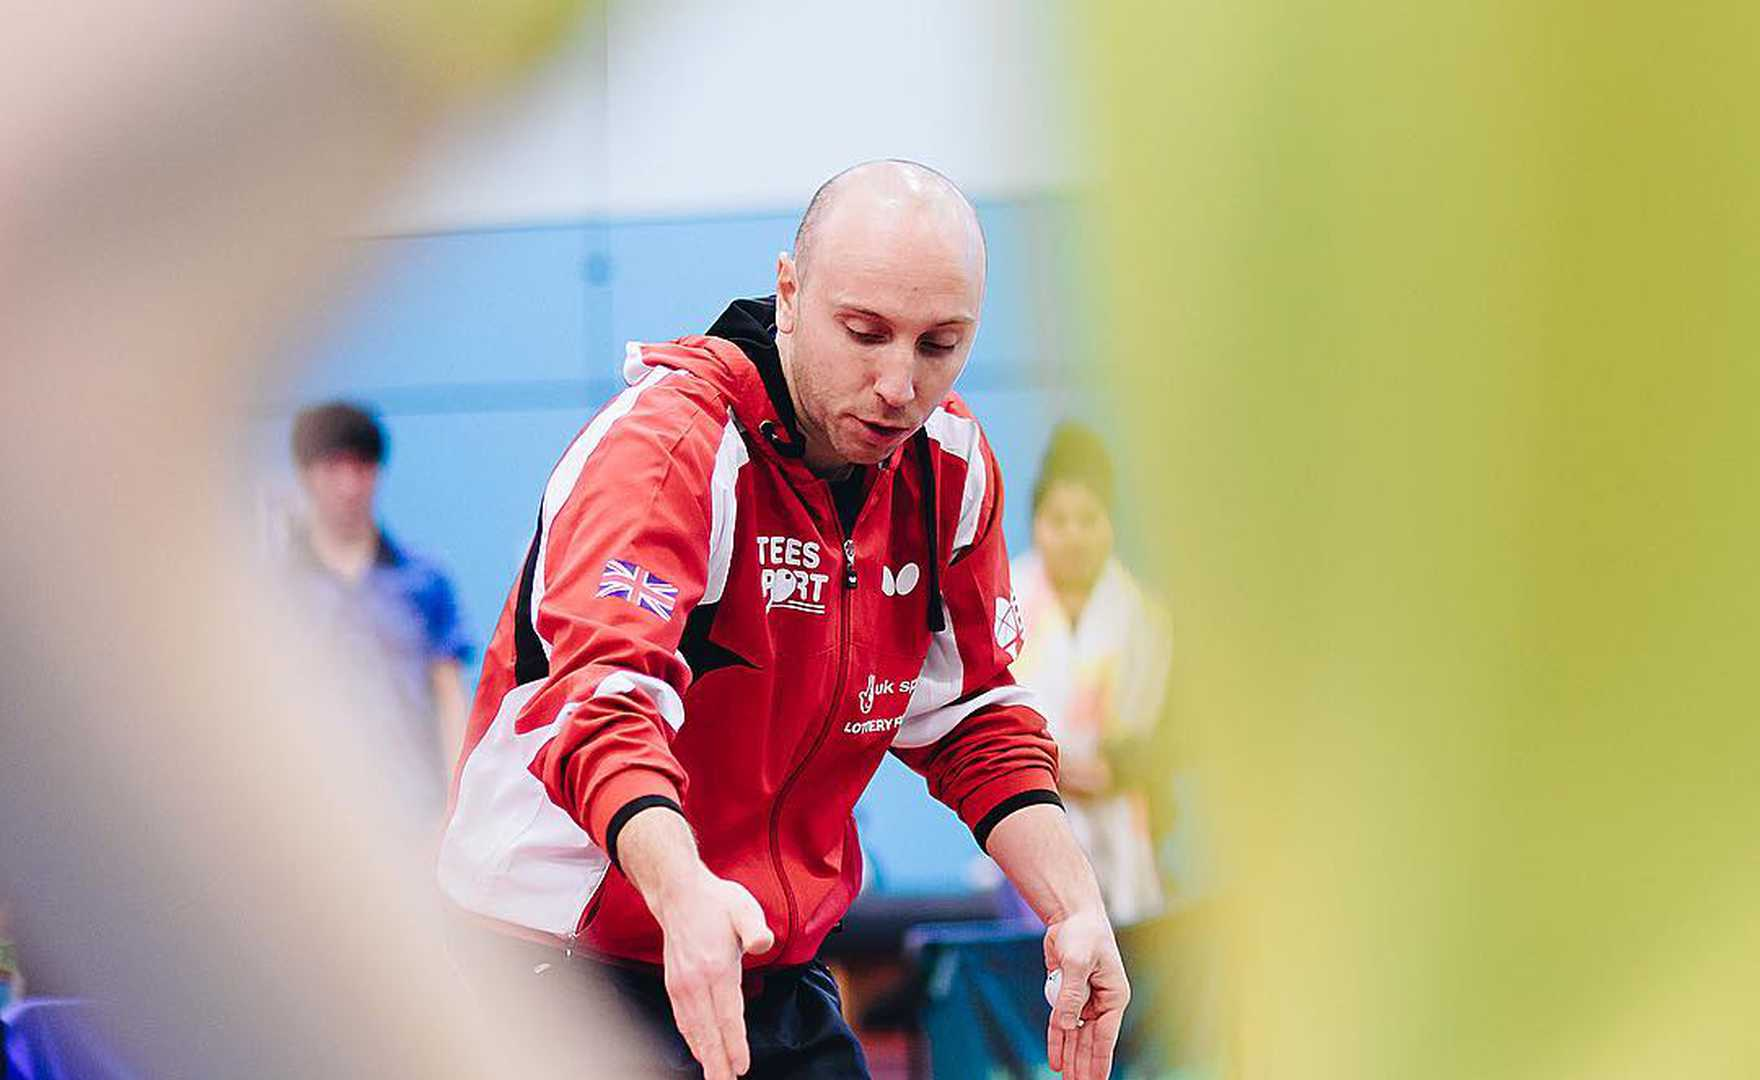 Greg Baker high-level sports coaching